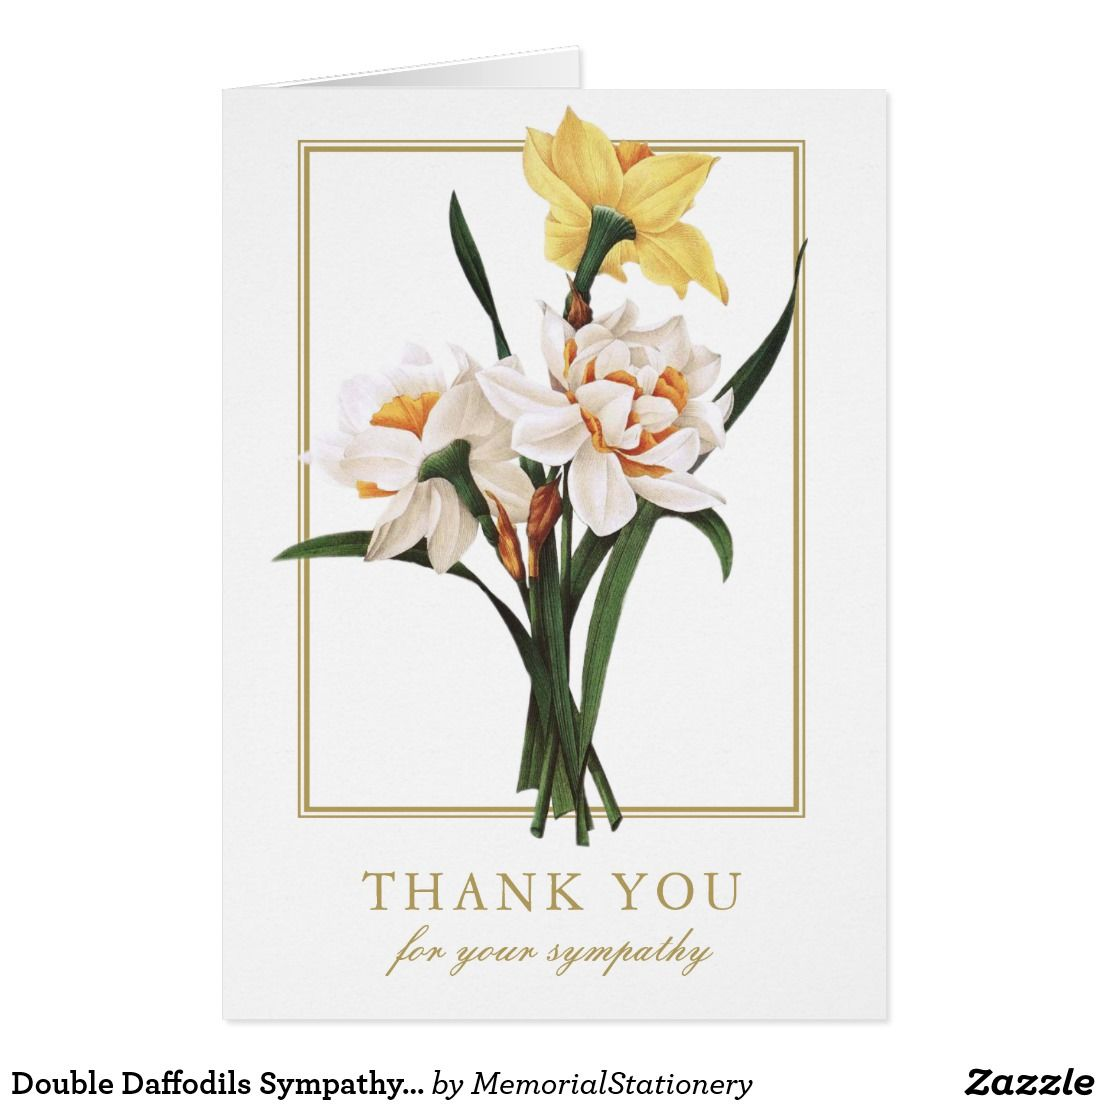 Double daffodils sympathy funeral thank you cards funeral double daffodils sympathy funeral thank you cards izmirmasajfo